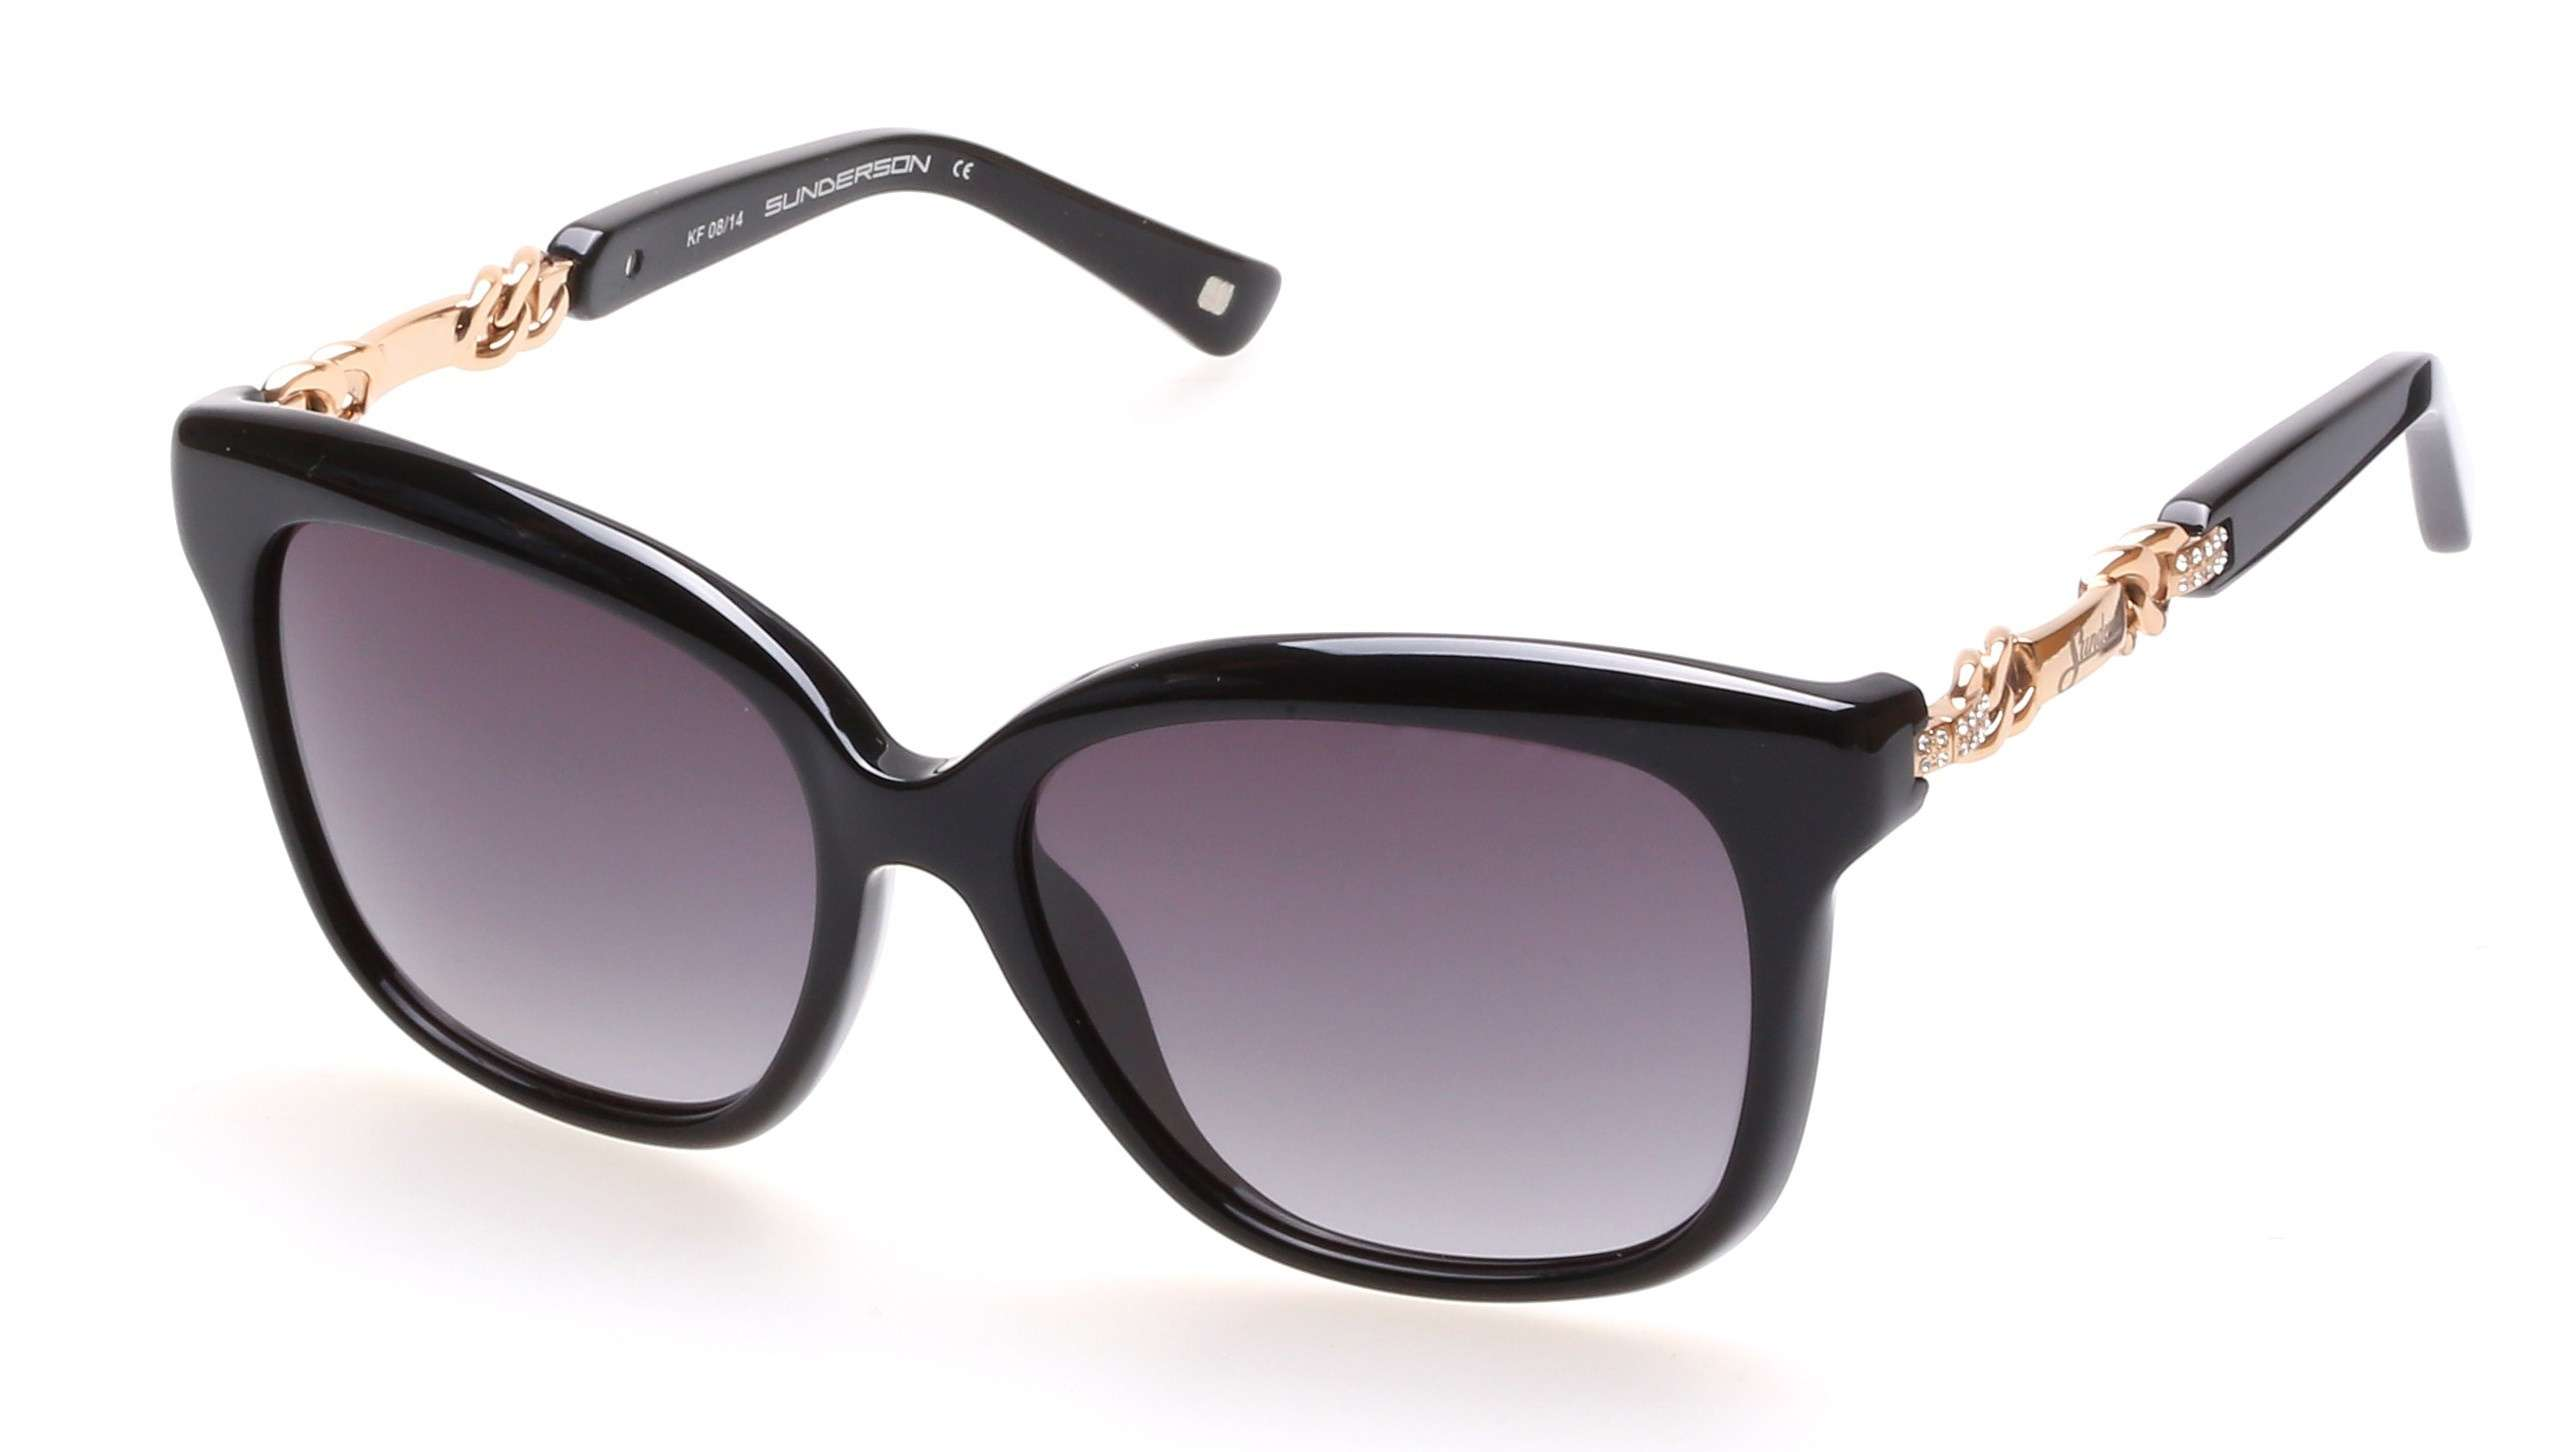 c01f1b2eb85 Sunglasses have become one of the most important and beautiful accessories  nowadays